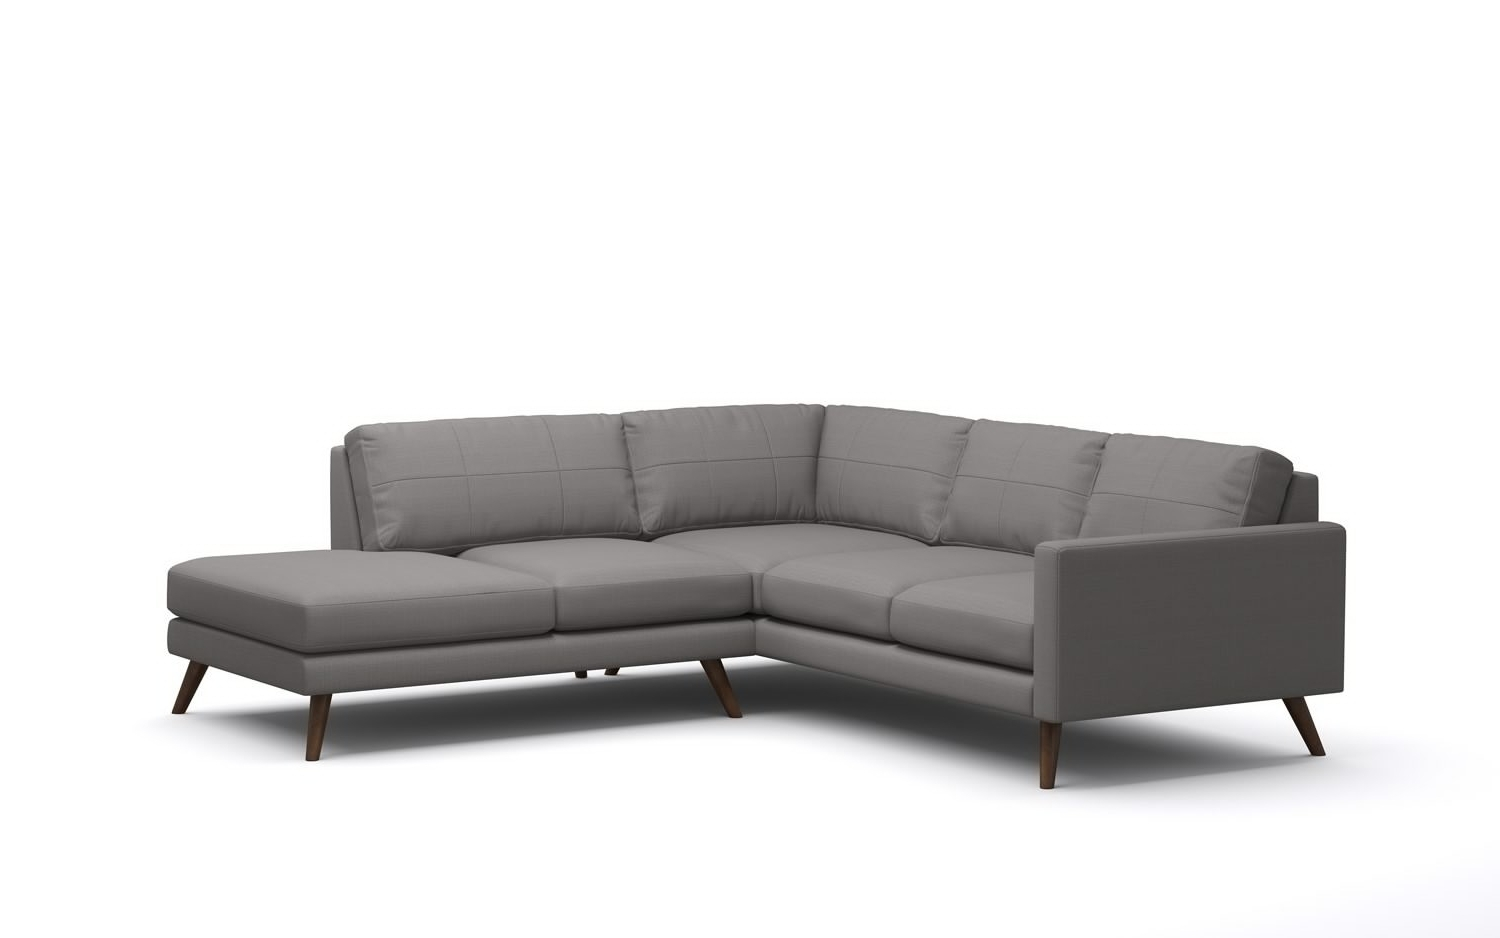 Houzz Sectional Sofas With Regard To Famous Sectional Sofa Design: European Sectional Sofa Houzz Online Sale (View 6 of 15)